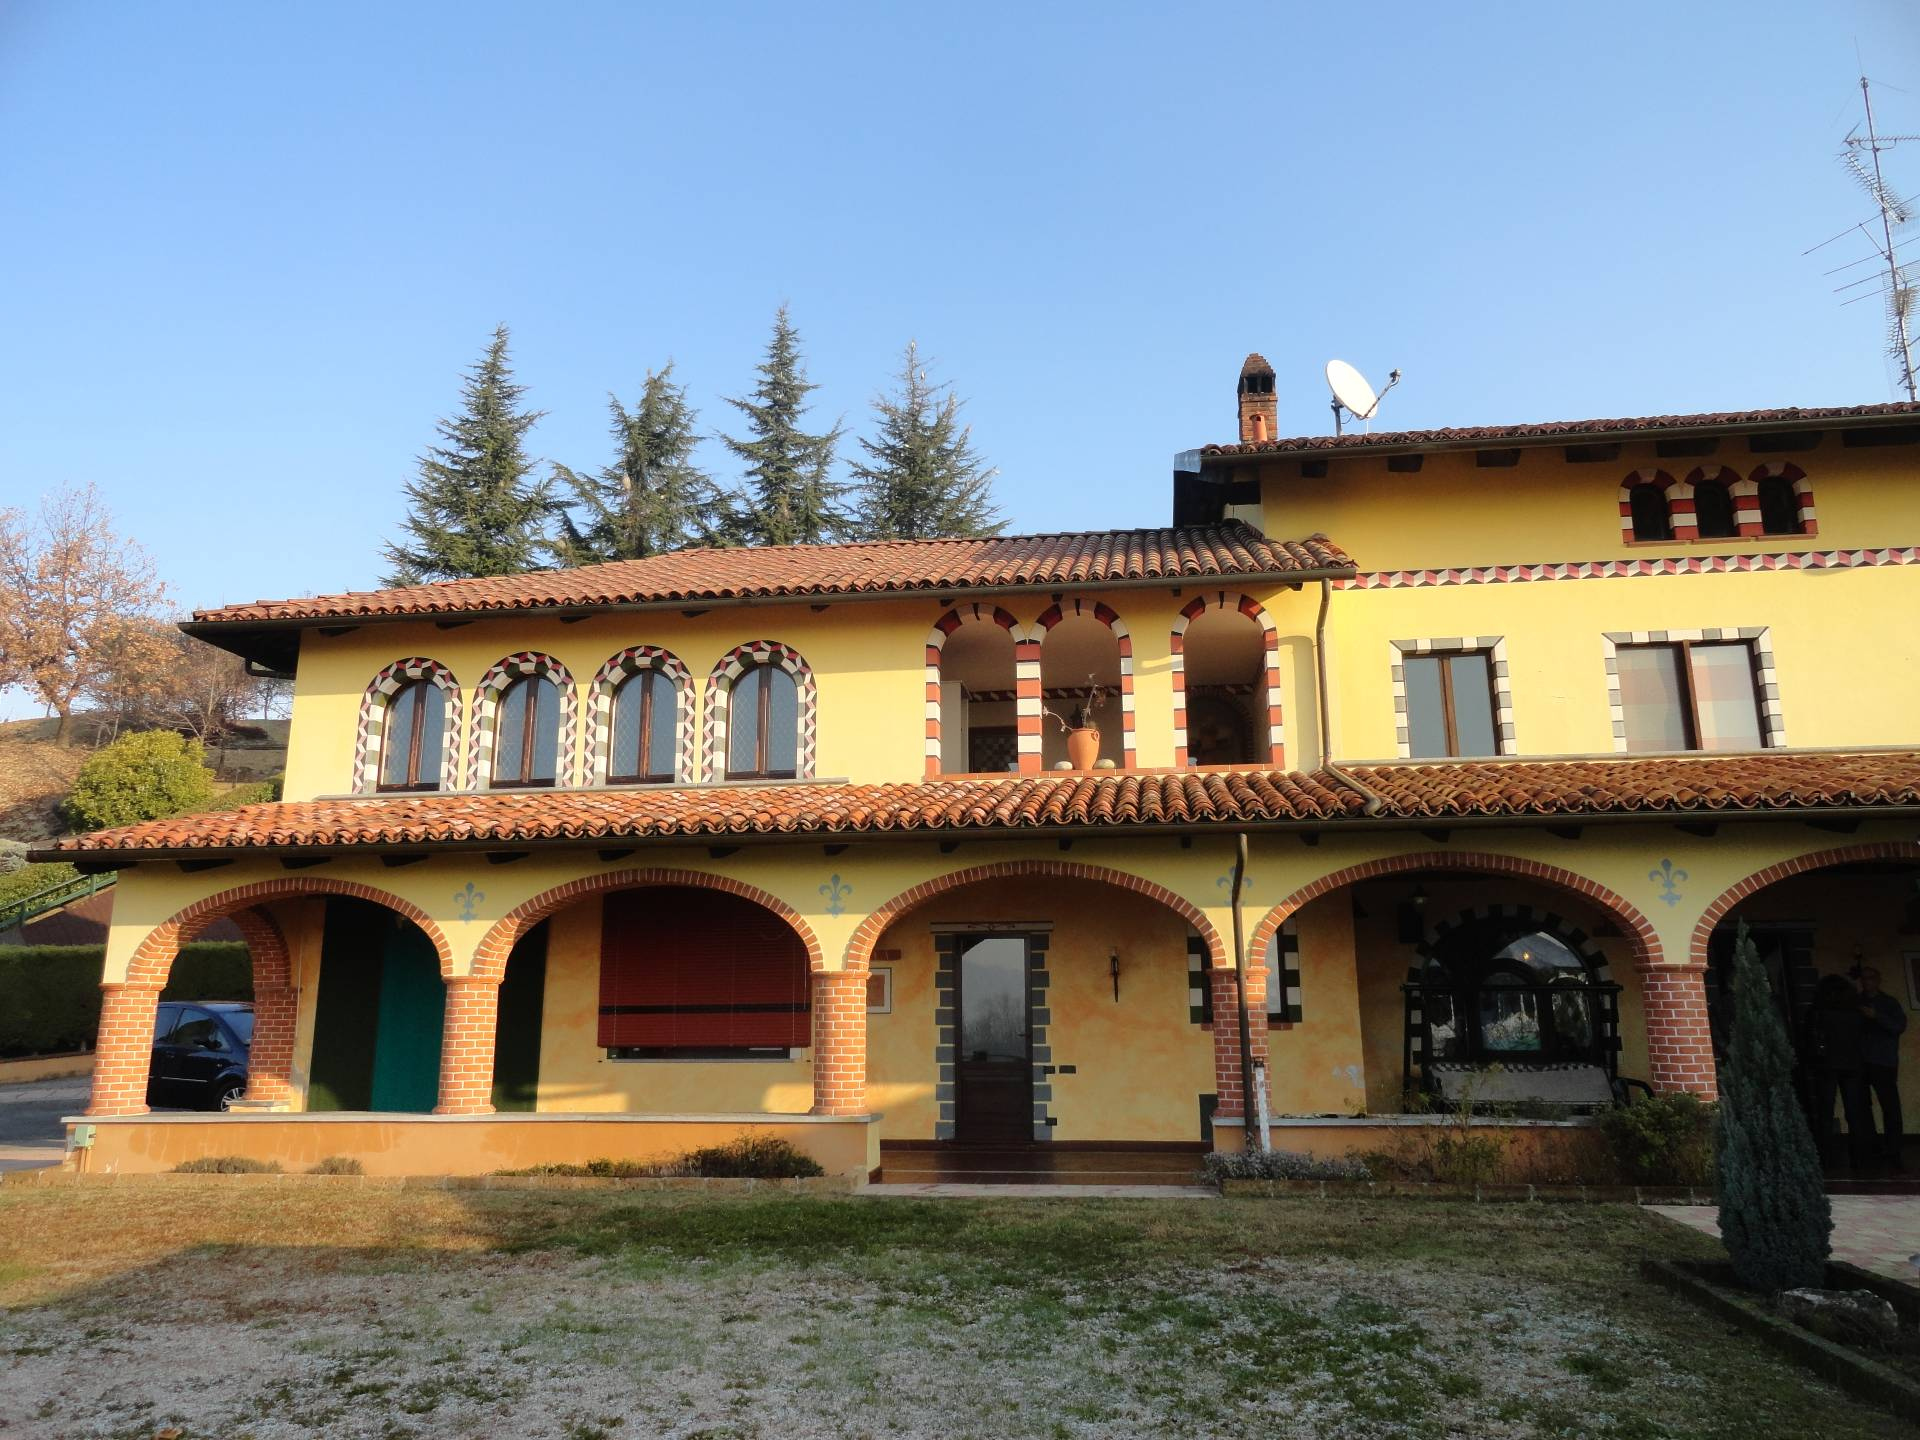 589 - Cavagnolo, Via Scallaro